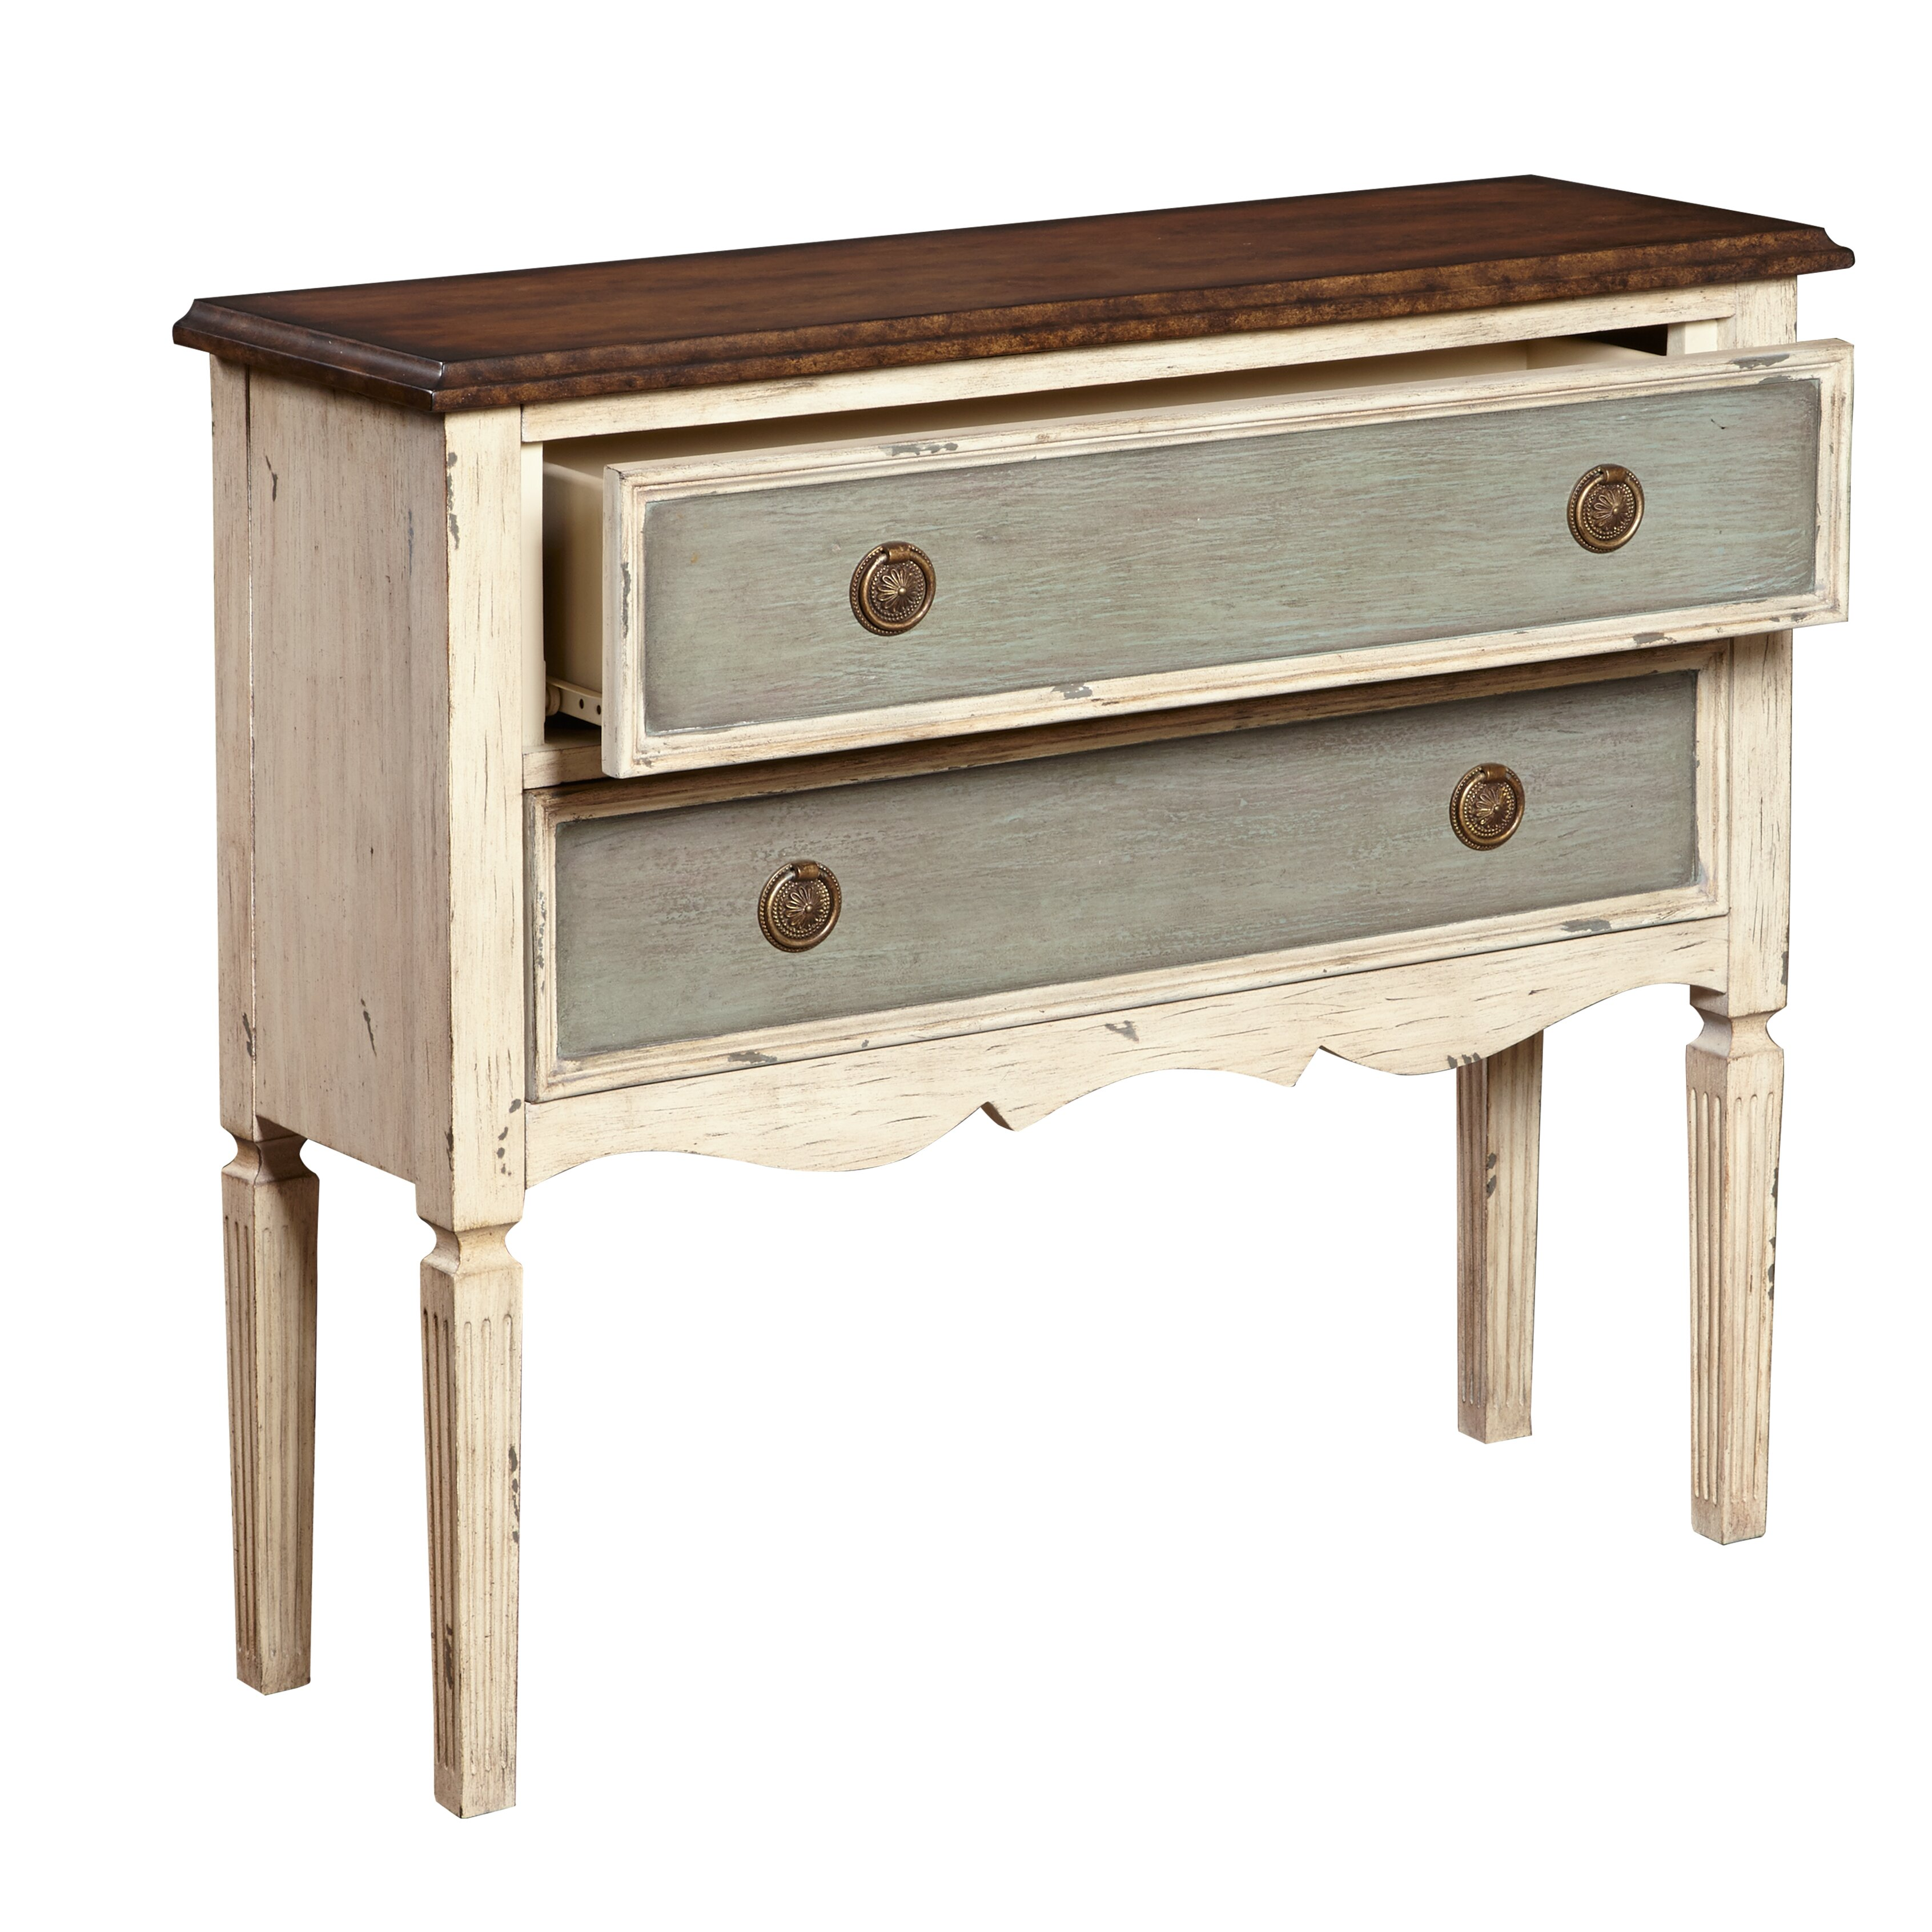 #91743A Furniture Accent Furniture Grey Accent Cabinets And Chests August  with 3383x3383 px of Most Effective 2 Drawer Chest Furniture 33833383 wallpaper @ avoidforclosure.info